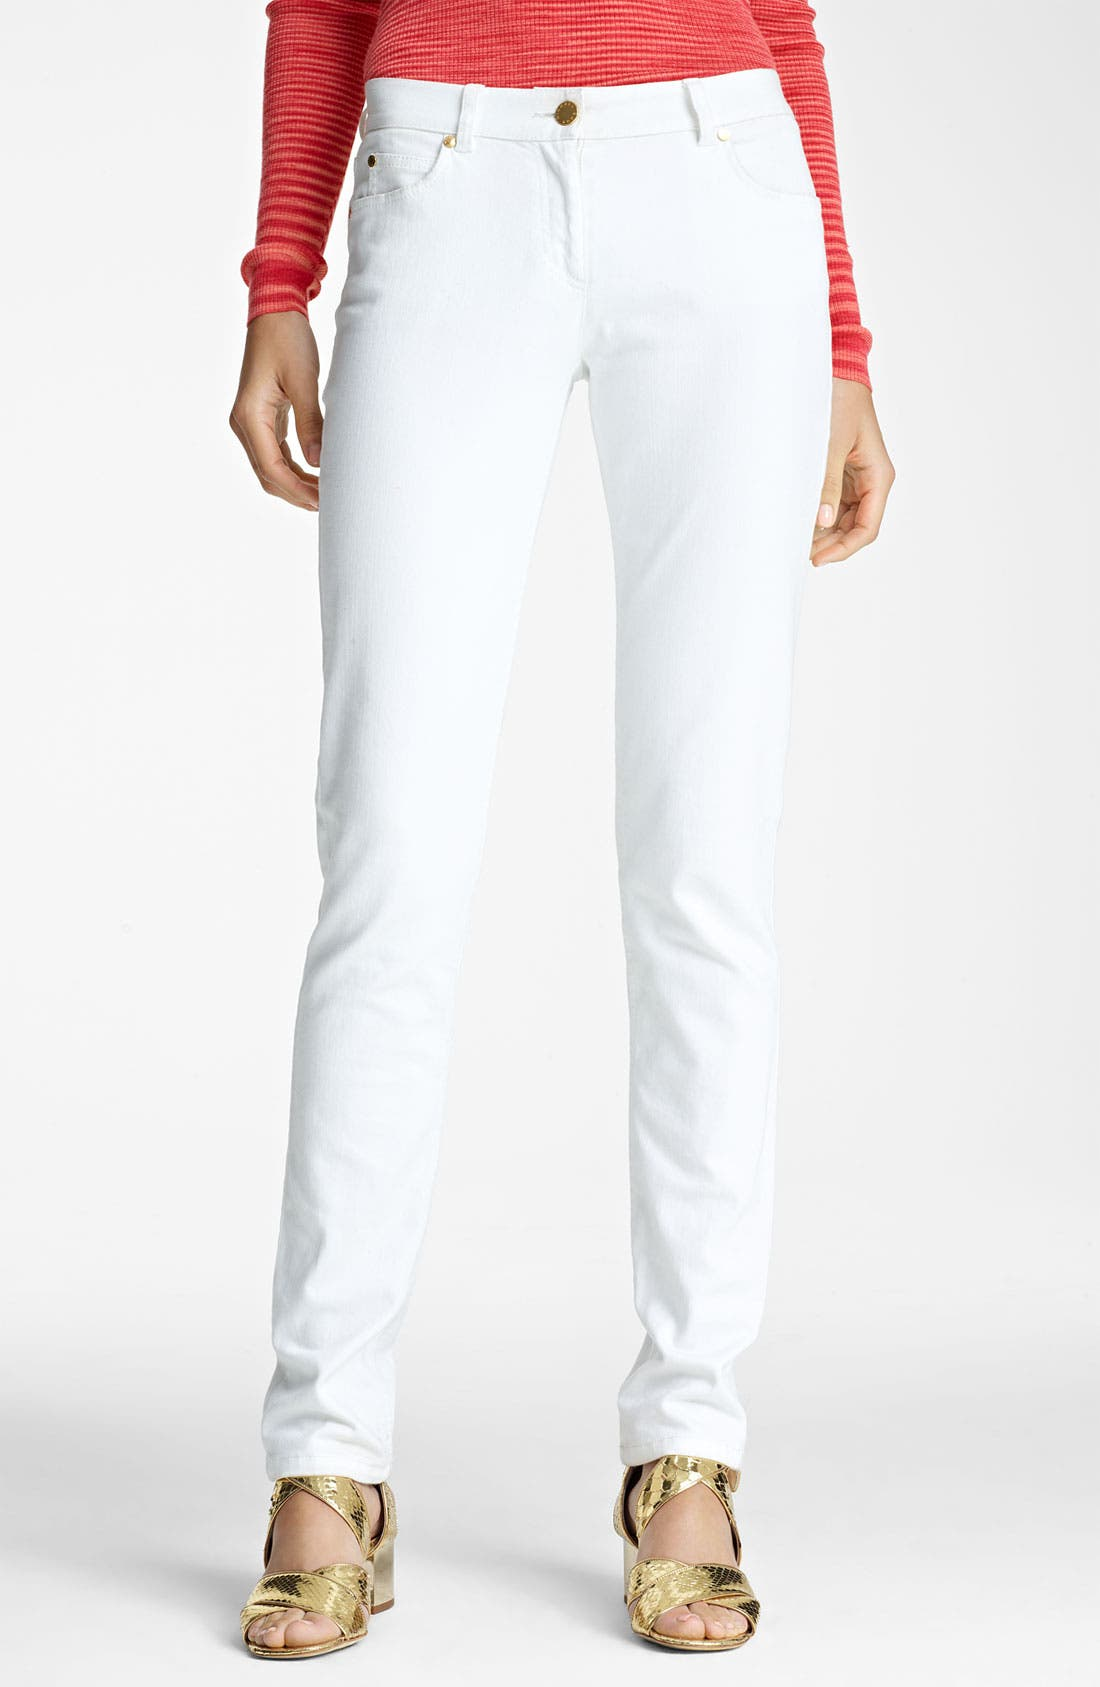 Alternate Image 1 Selected - Michael Kors Stovepipe Stretch Jeans